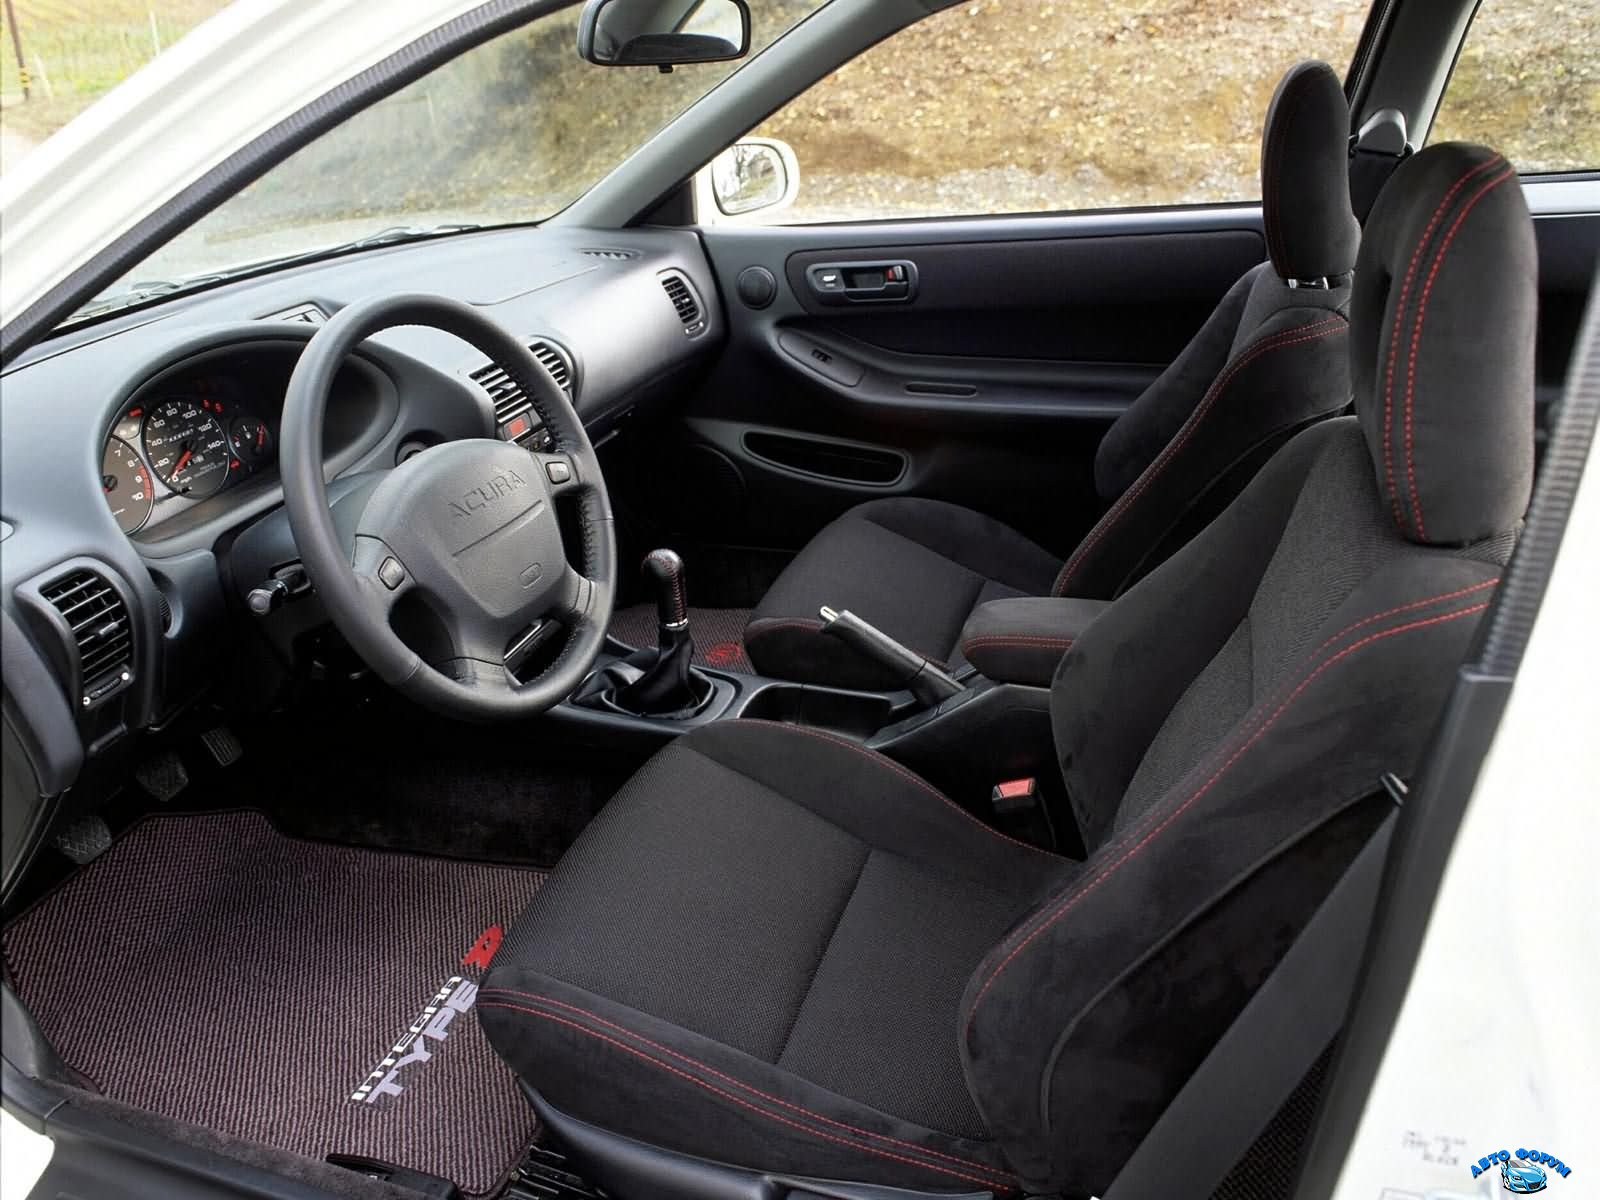 Acura-Integra-Type-R-interior.jpg